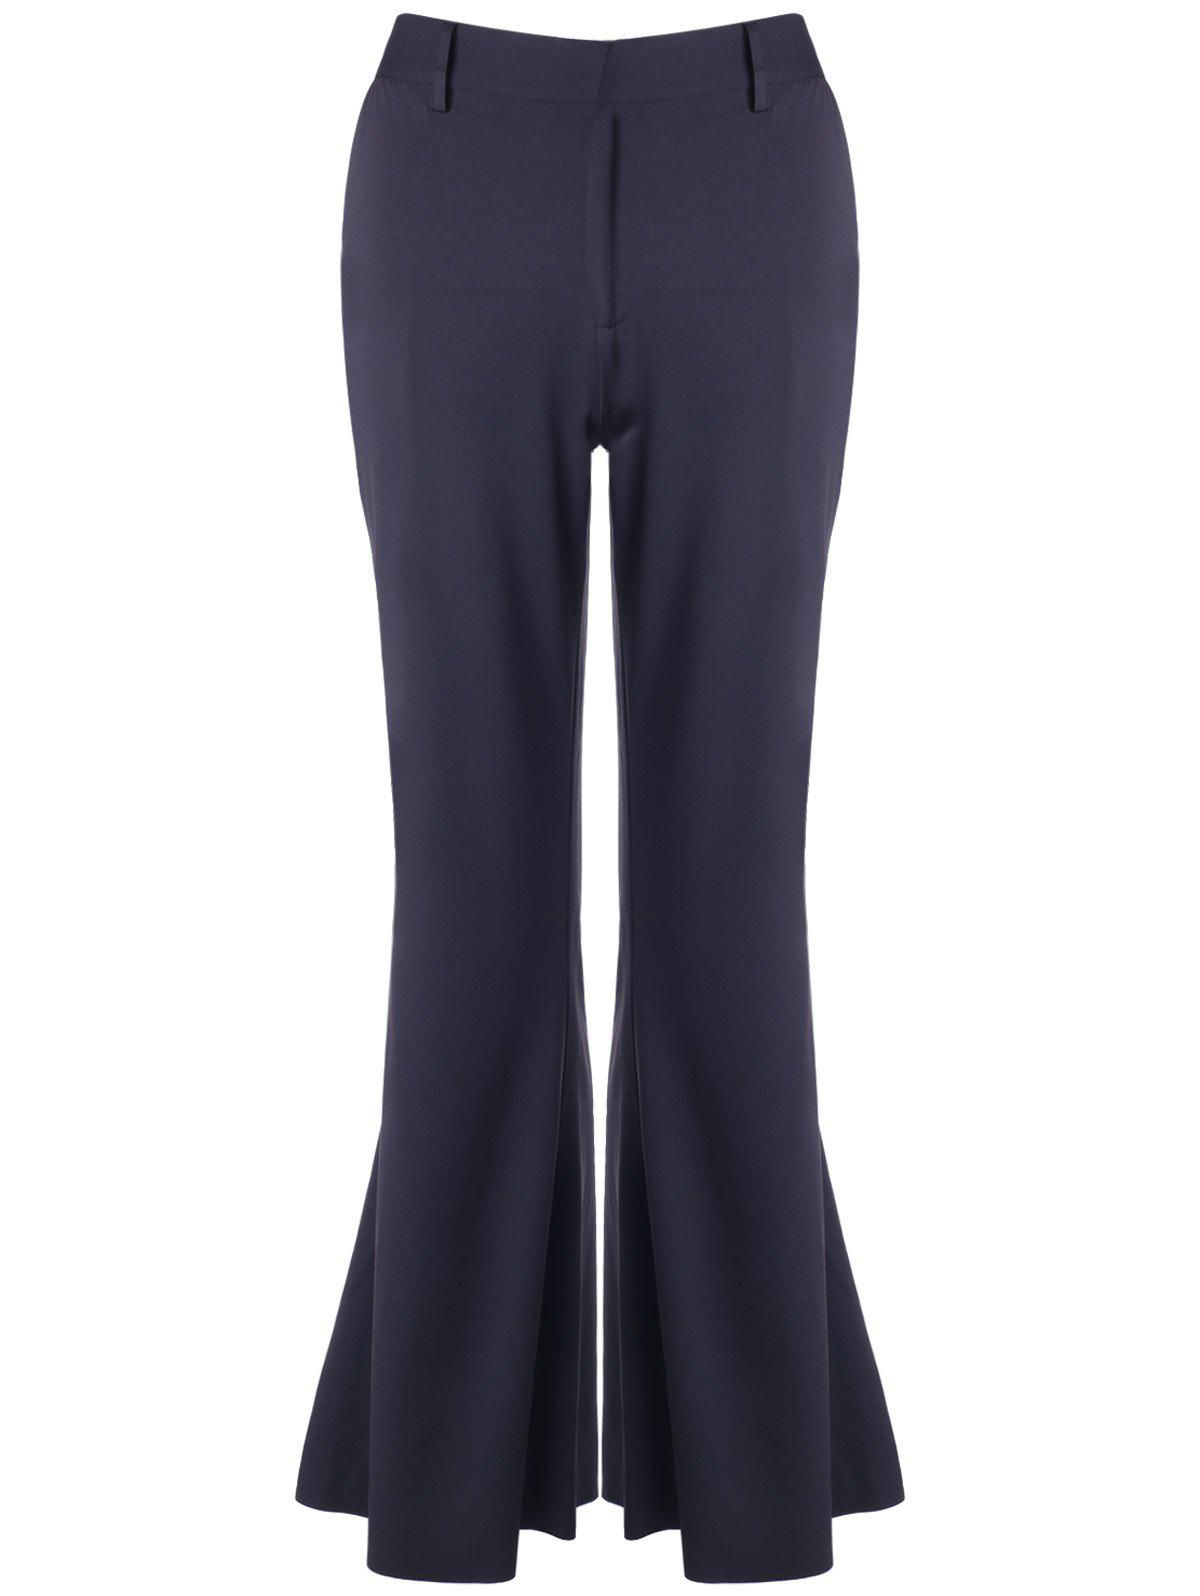 Bell Bottom Stretchy Trousers - BLACK S